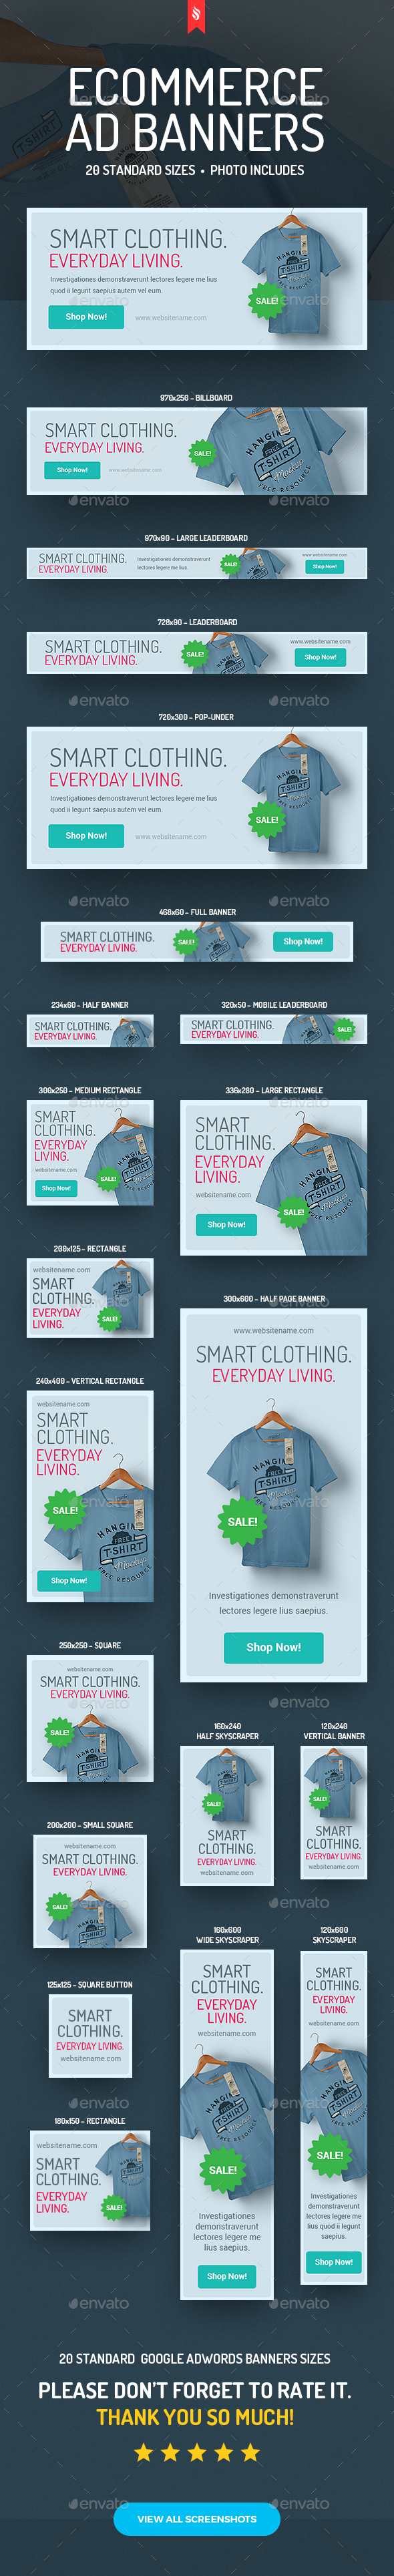 Clothes Shop - eCommerce Ad Banners - Banners & Ads Web Elements